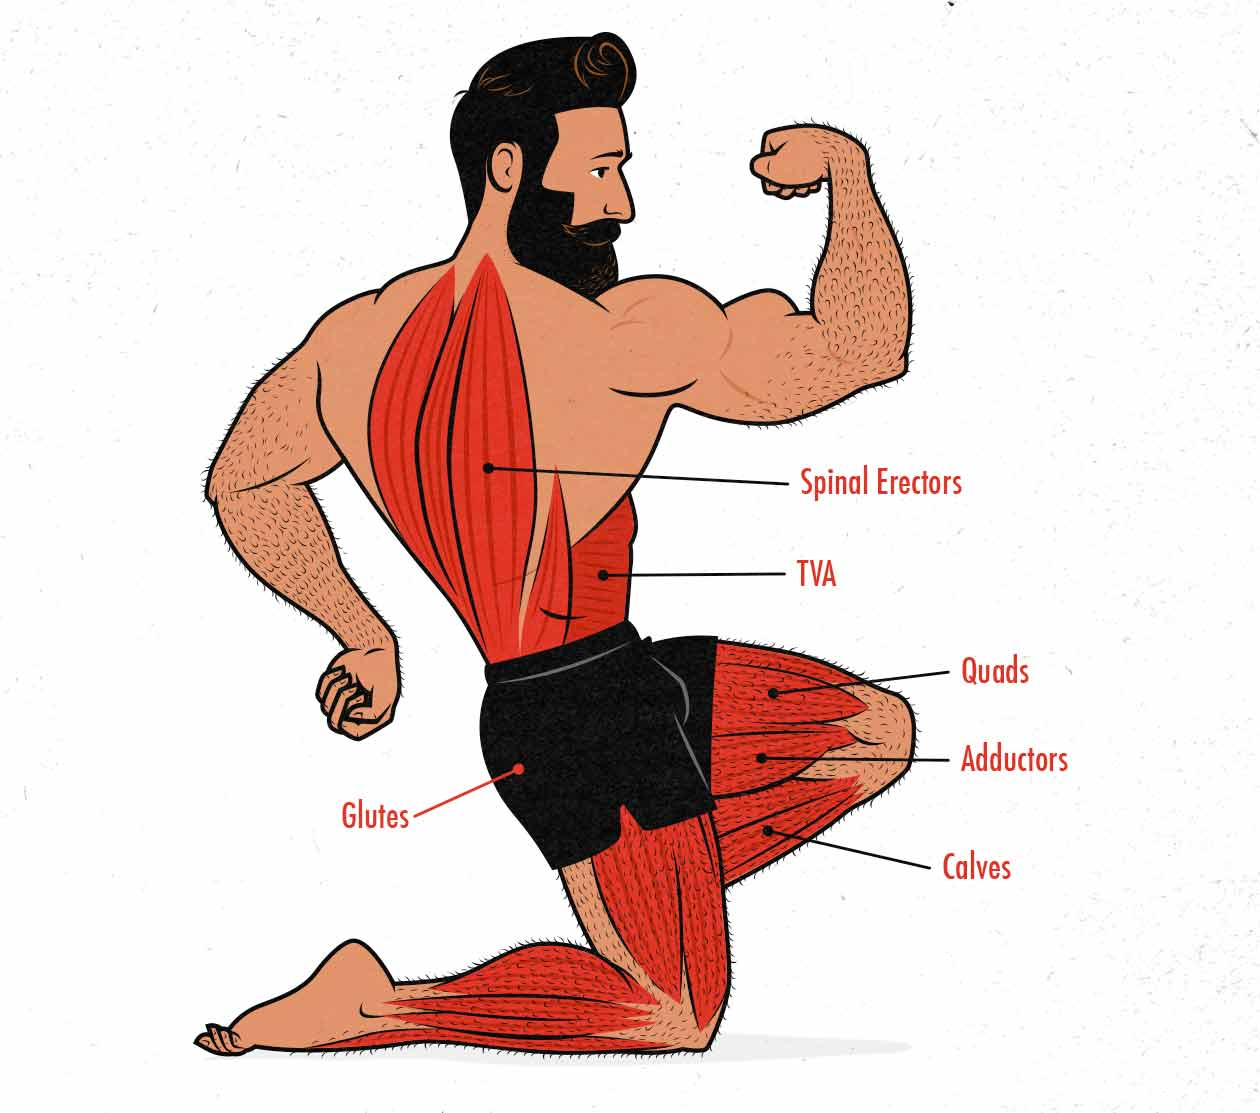 Muscles worked in the front squat illustration / diagram.